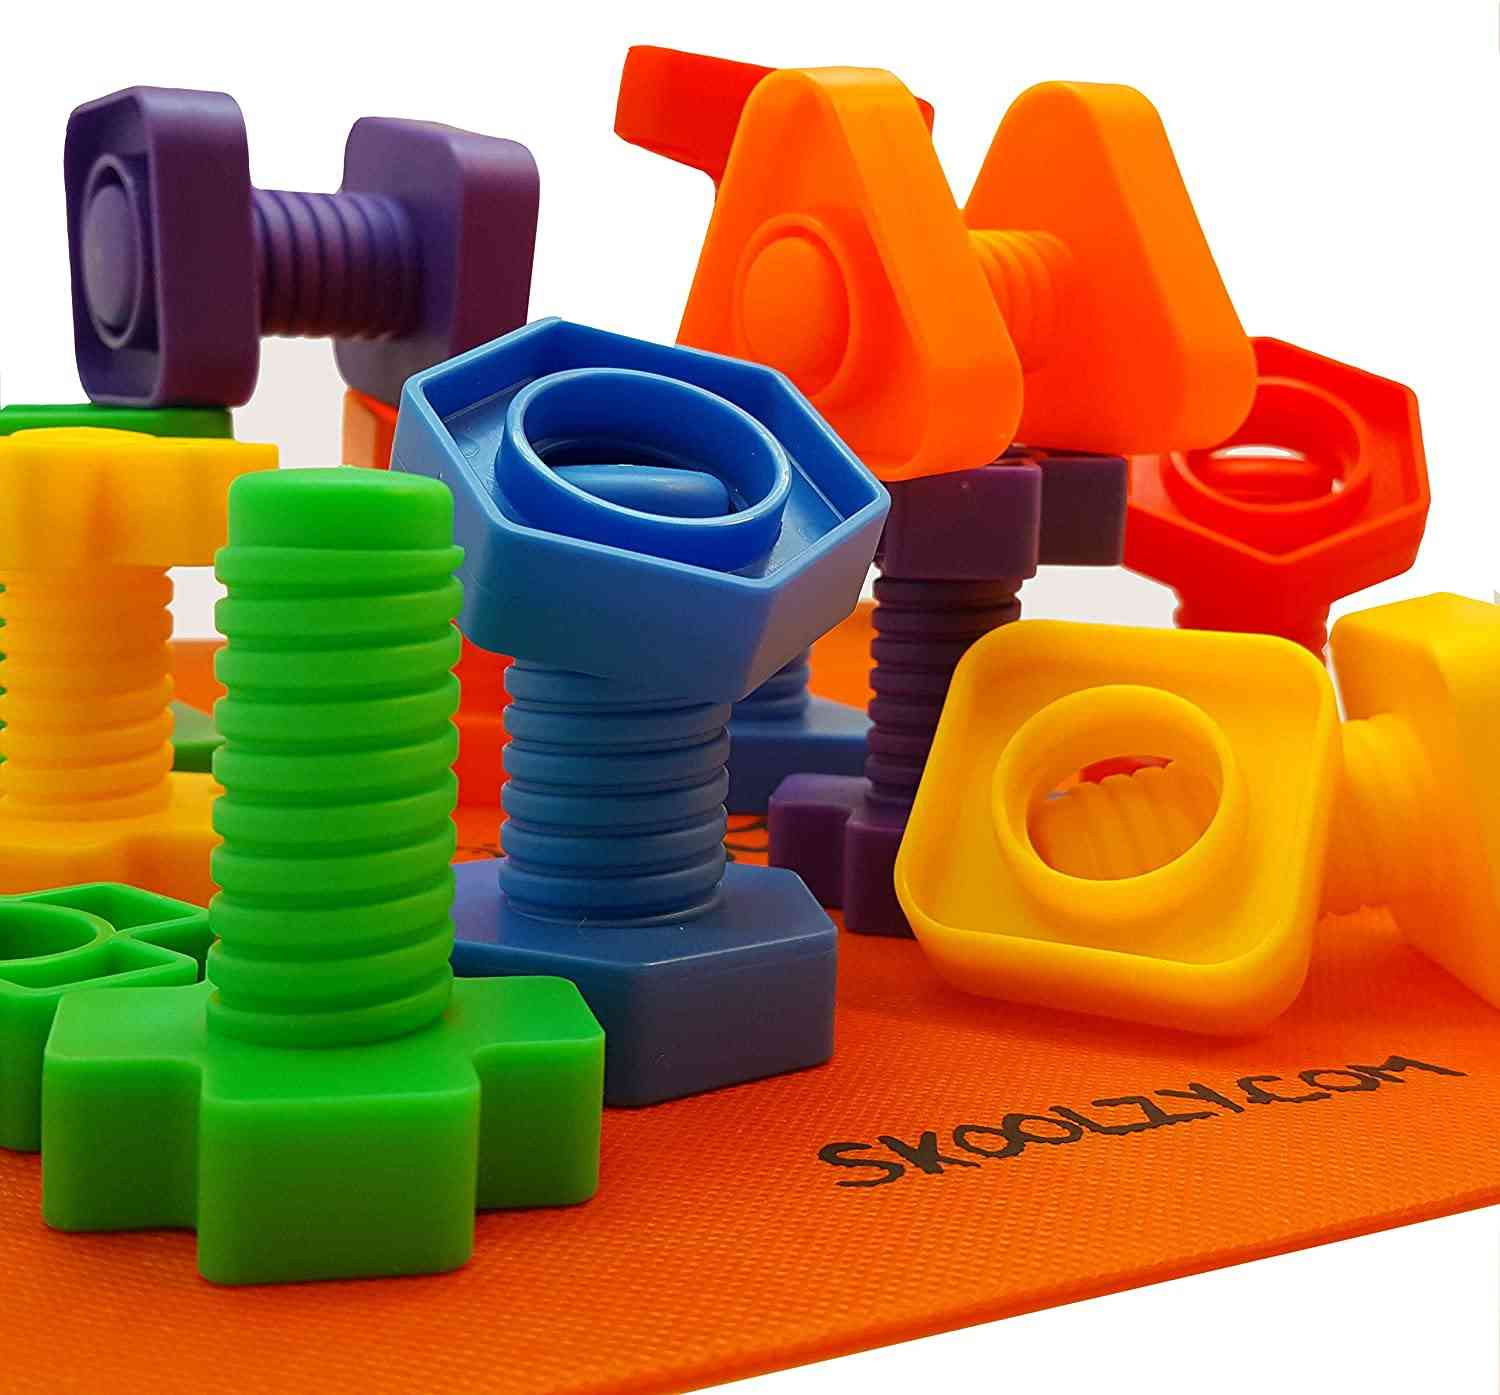 Screw Touch Pair Building Blocks - Early Education Shape Toy